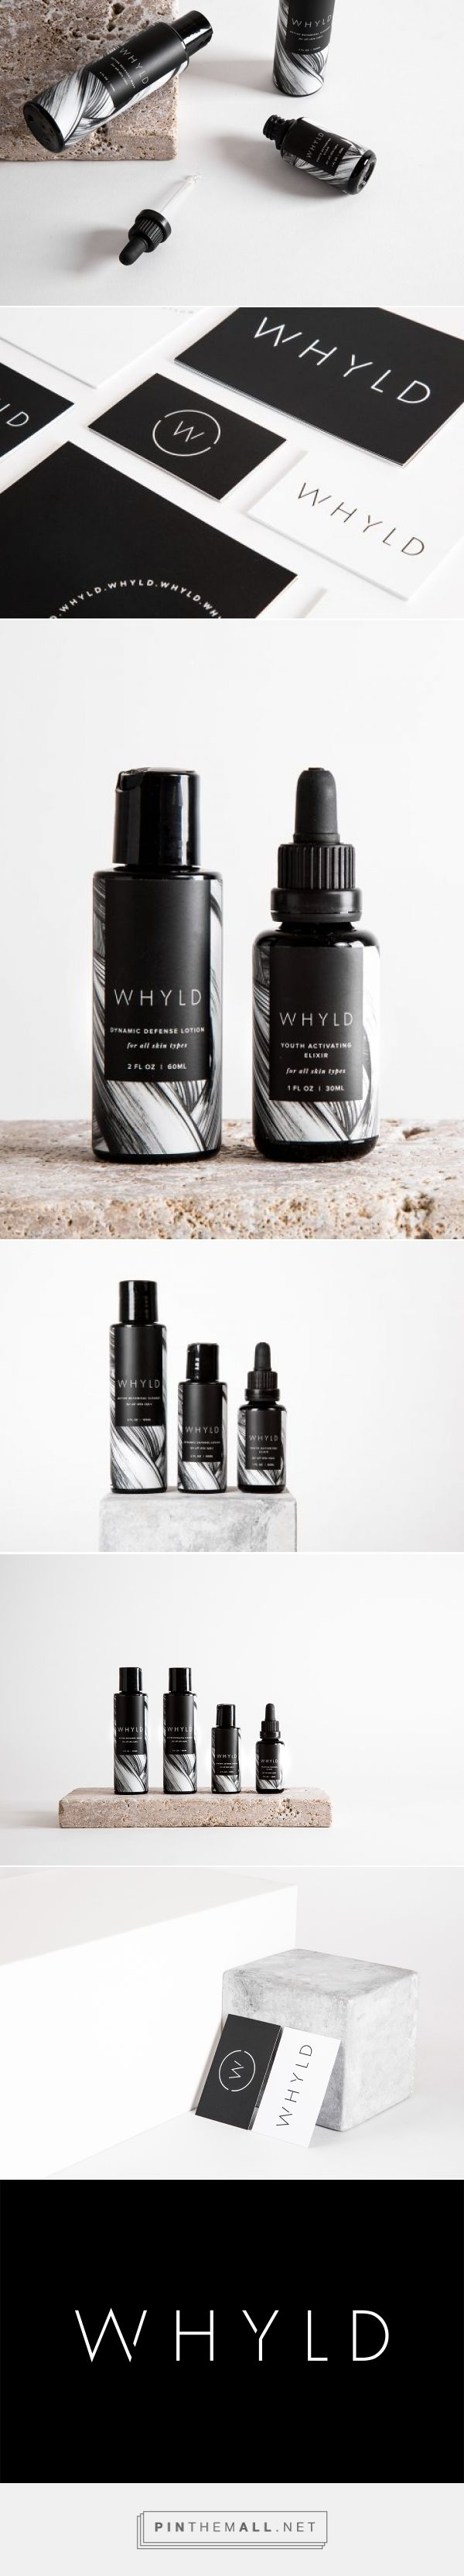 Whyld Skincare Branding and Packaging by Smack Bang Designs